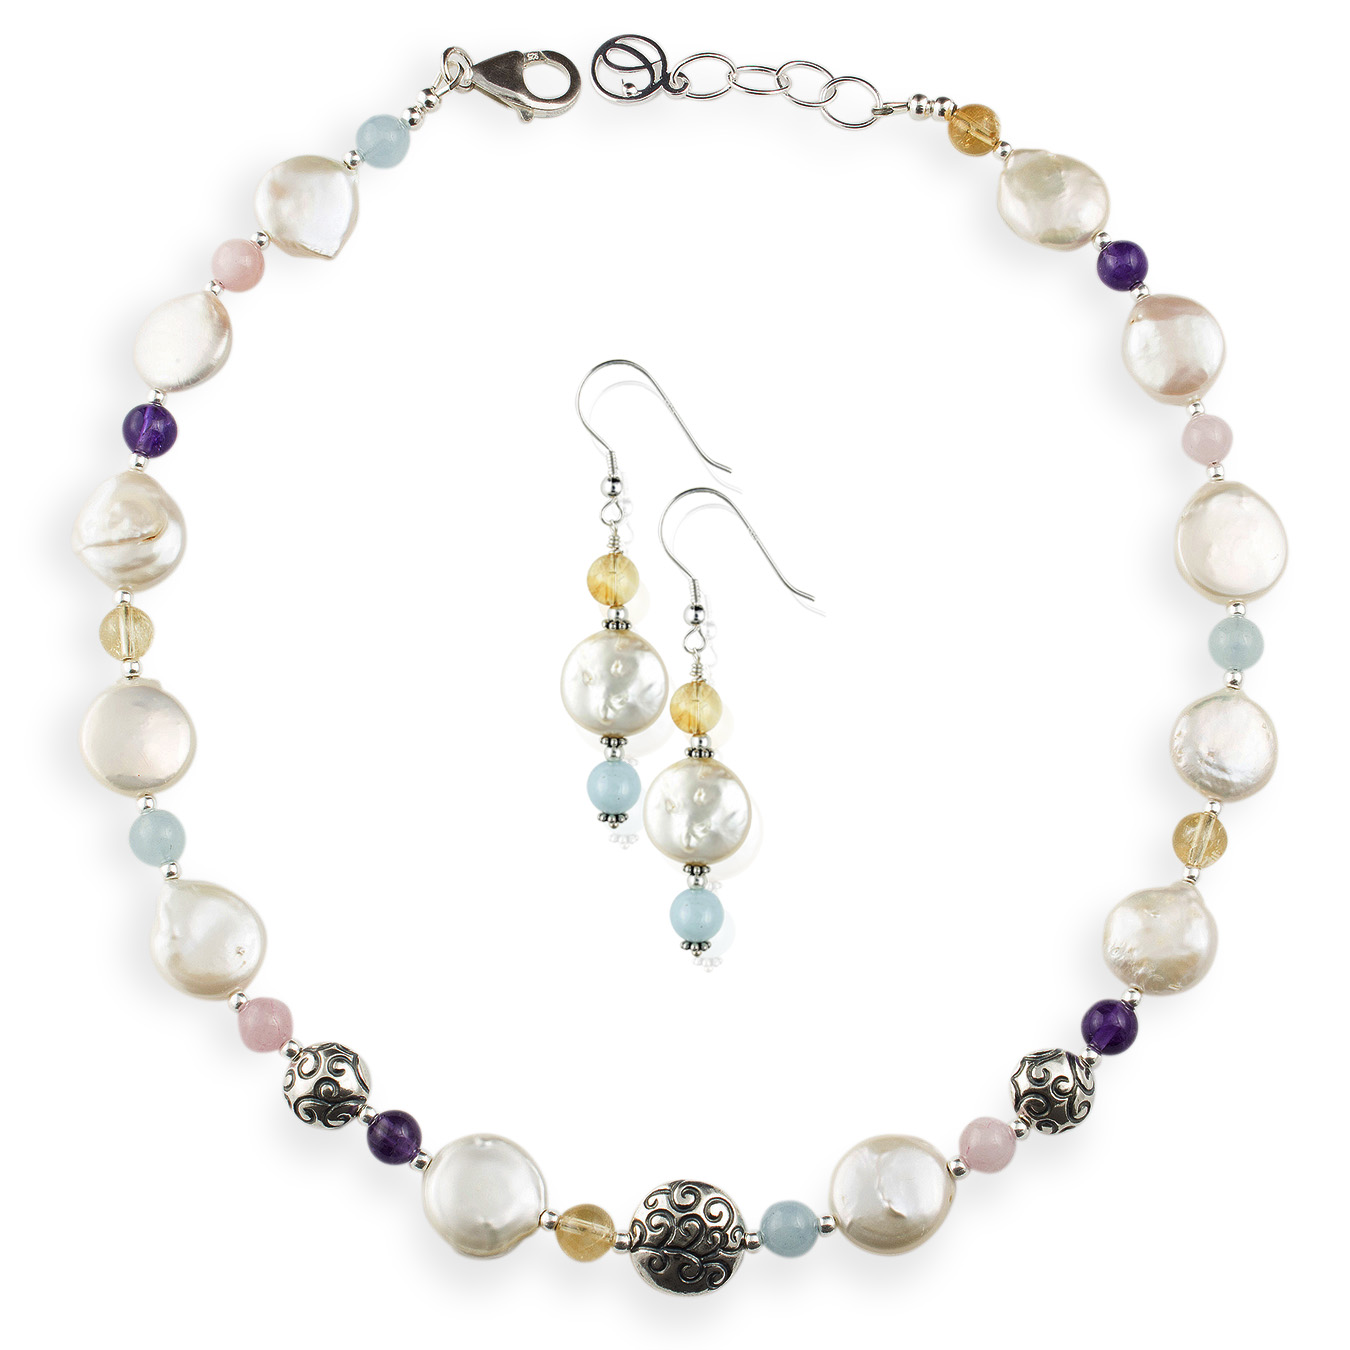 Create your own necklace with choice of coin pearls and rose quartz